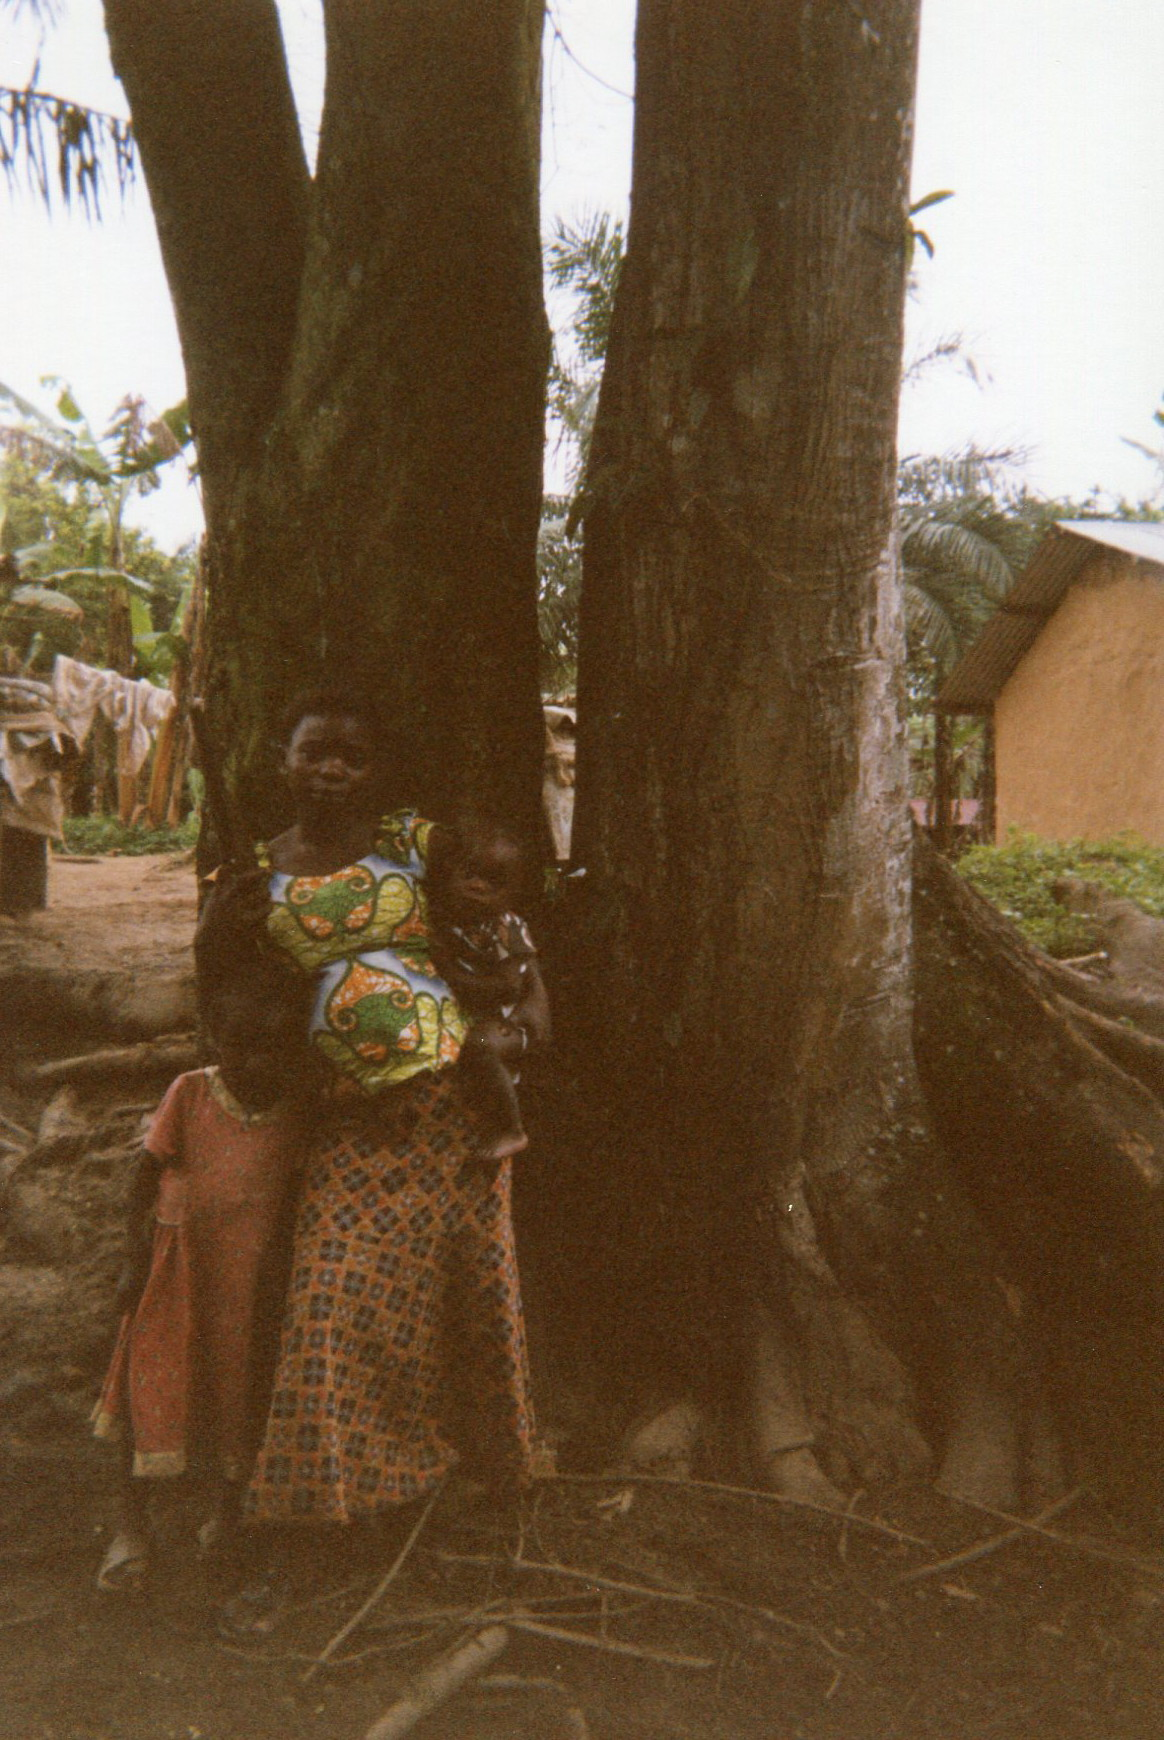 Here we are in the forest, we are fleeing from the war with the kids and being pregnant. Another night under the tree.